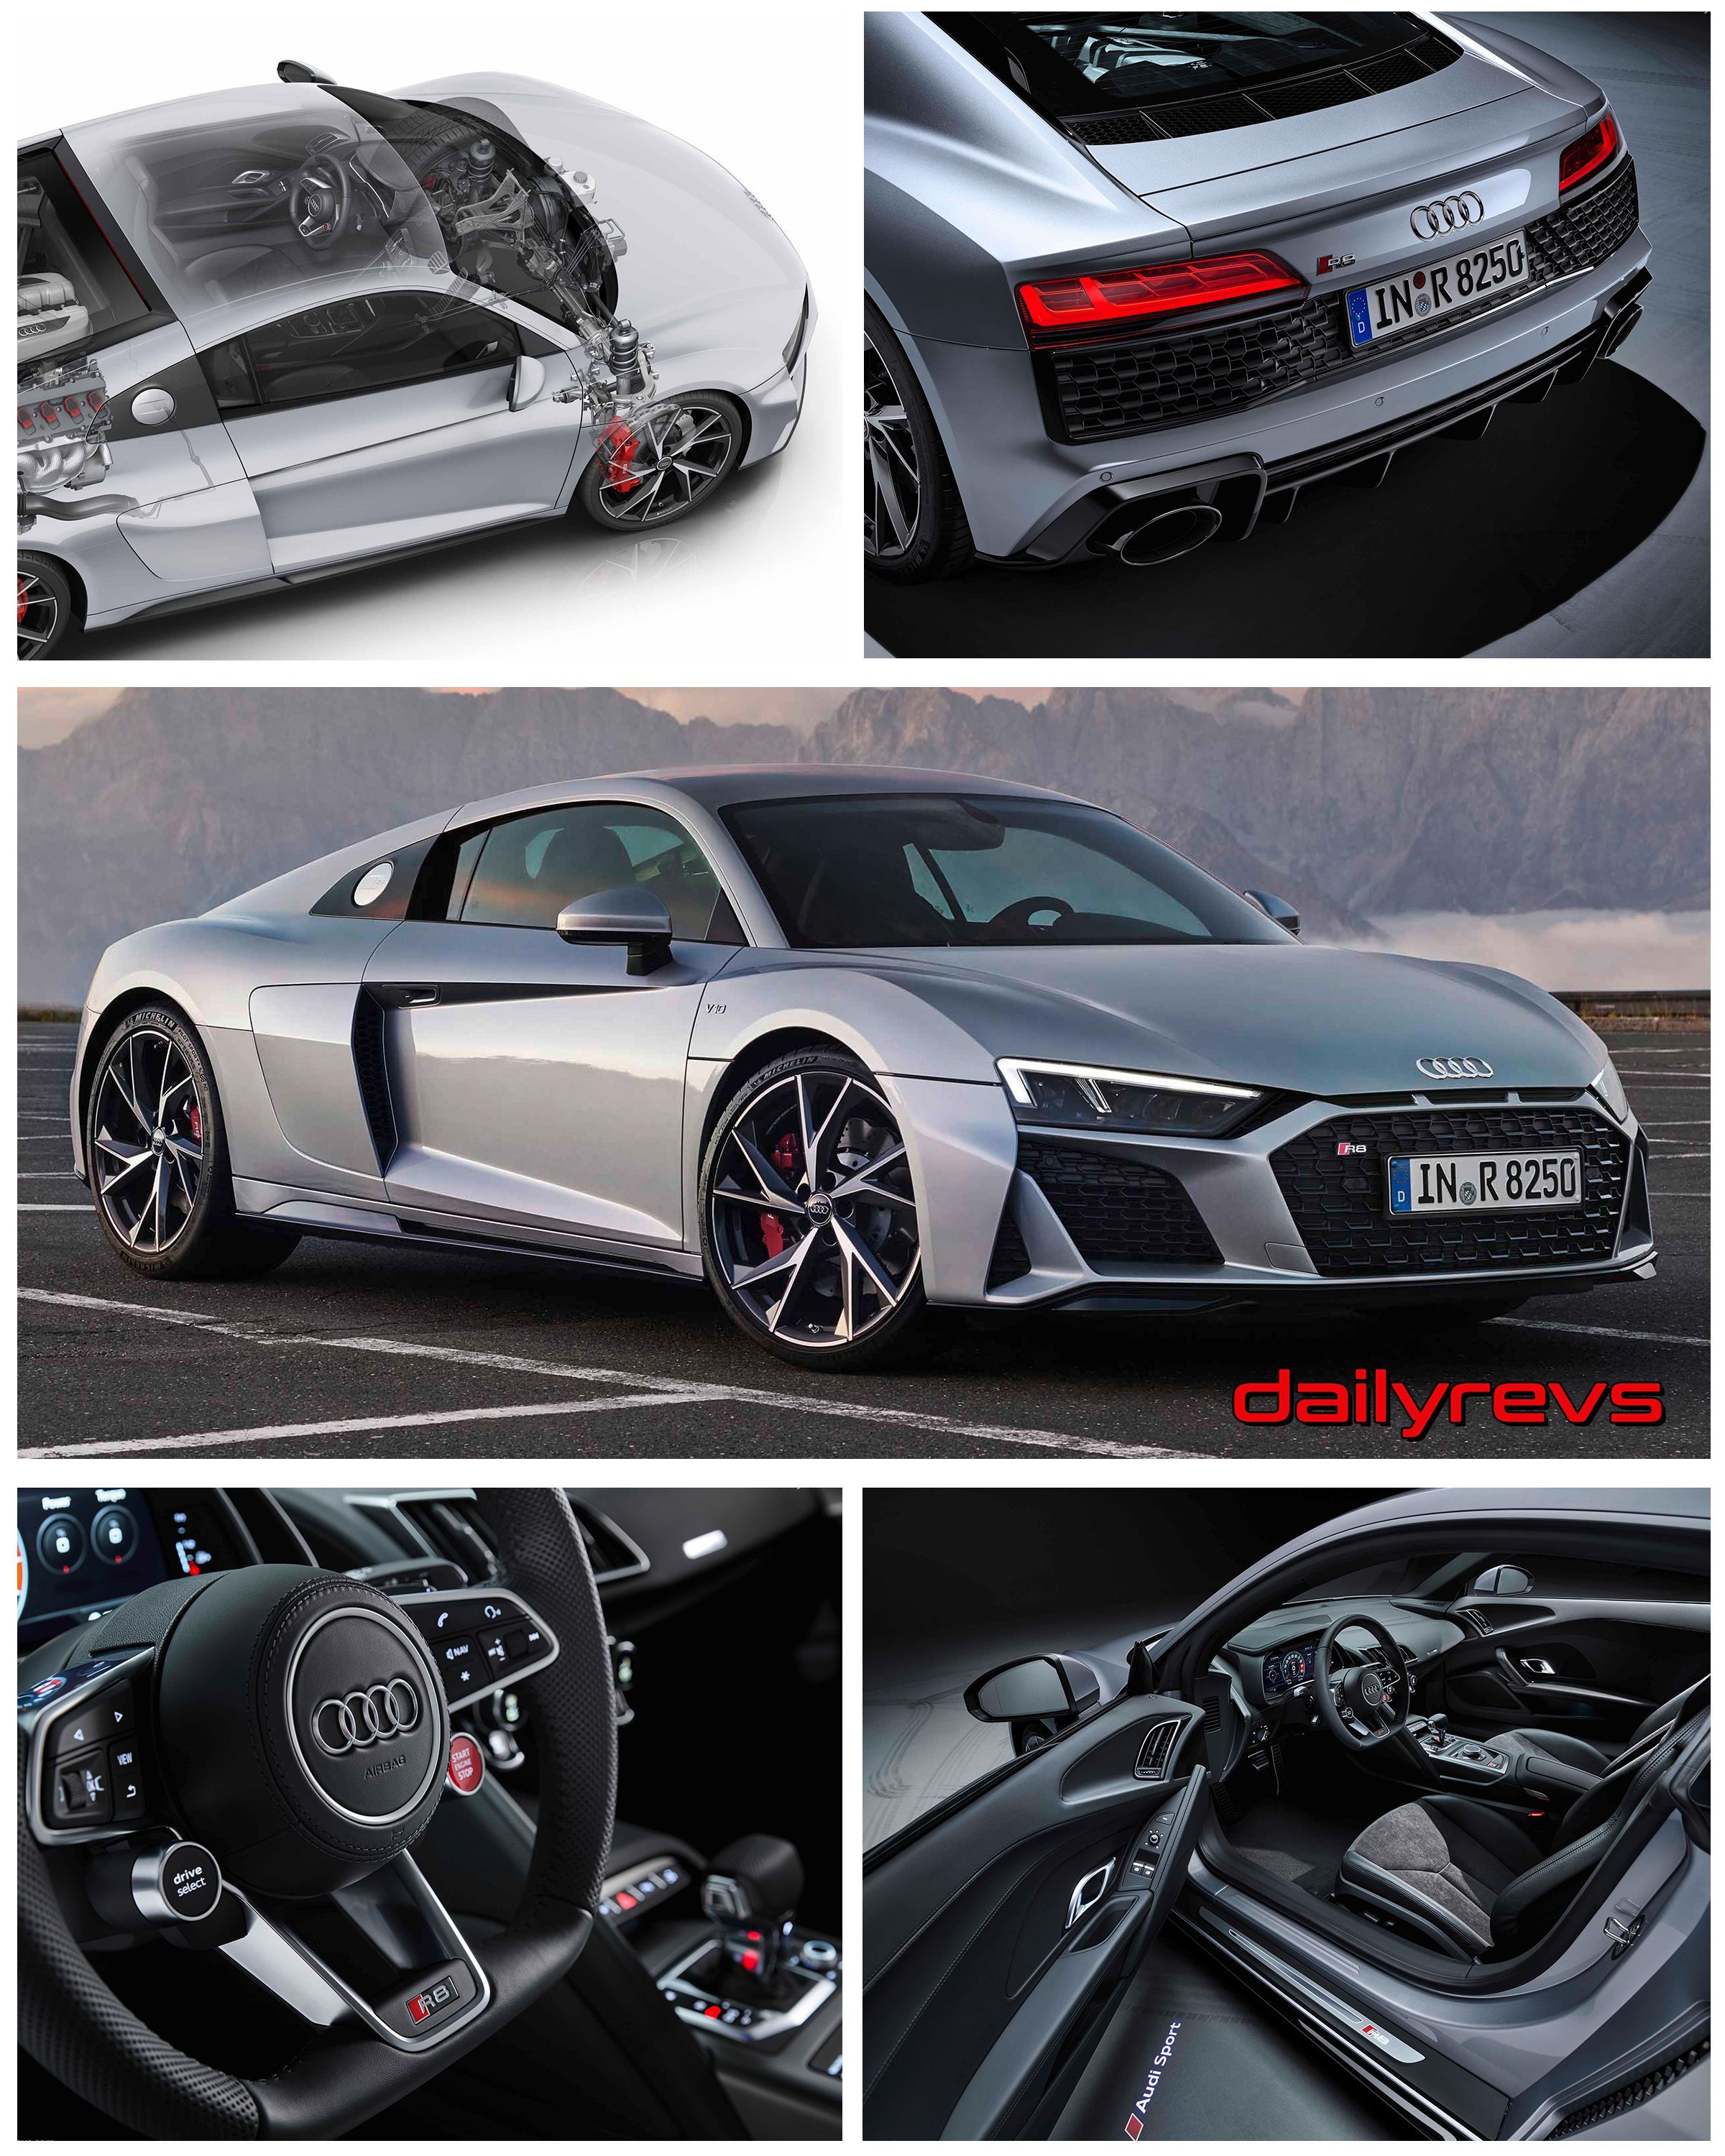 2020 Audi R8 V10 Rwd Coupe Dailyrevs Com Audir8 2020 Audi R8 V10 Rwd Coupe Hd Pictures Specs Informations Videos Dailyrevs Audi R8 V10 Audi R8 Audi